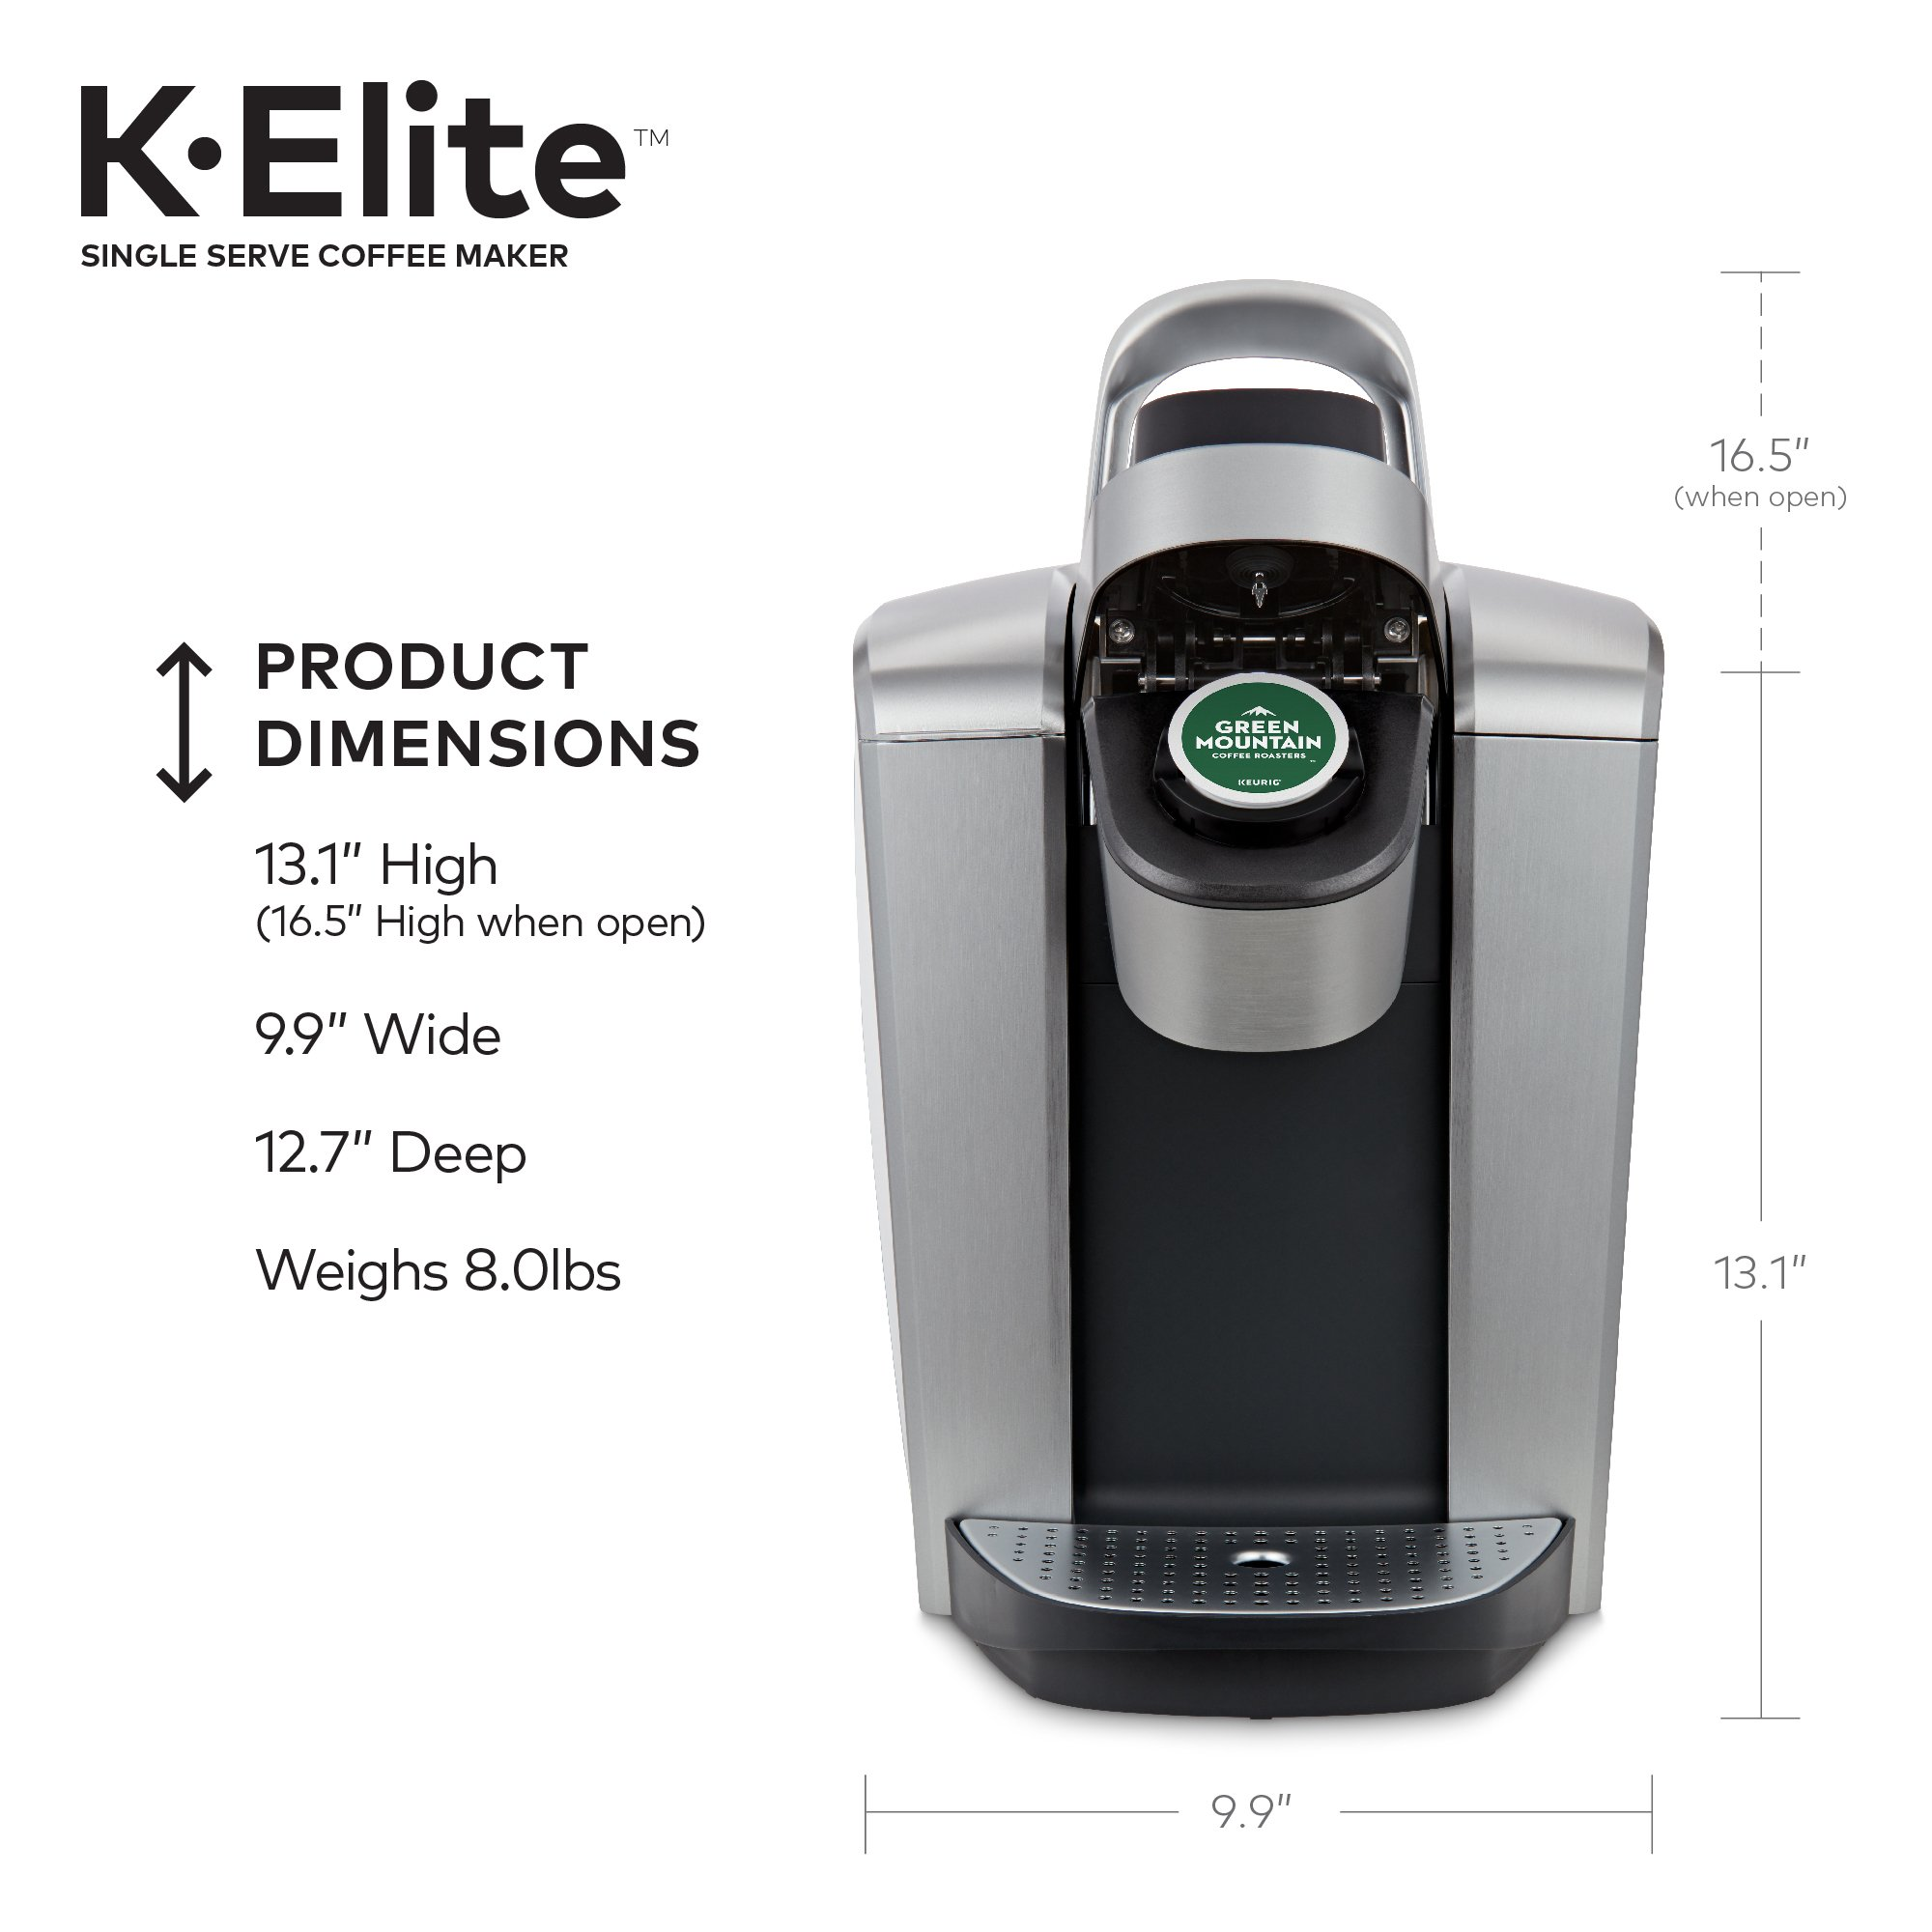 Keurig K-Elite K Single Serve K-Cup Pod Maker, with Strong Temperature Control, Iced Coffee Capability, 12oz Brew Size, Programmable, Brushed Silver by Keurig (Image #8)